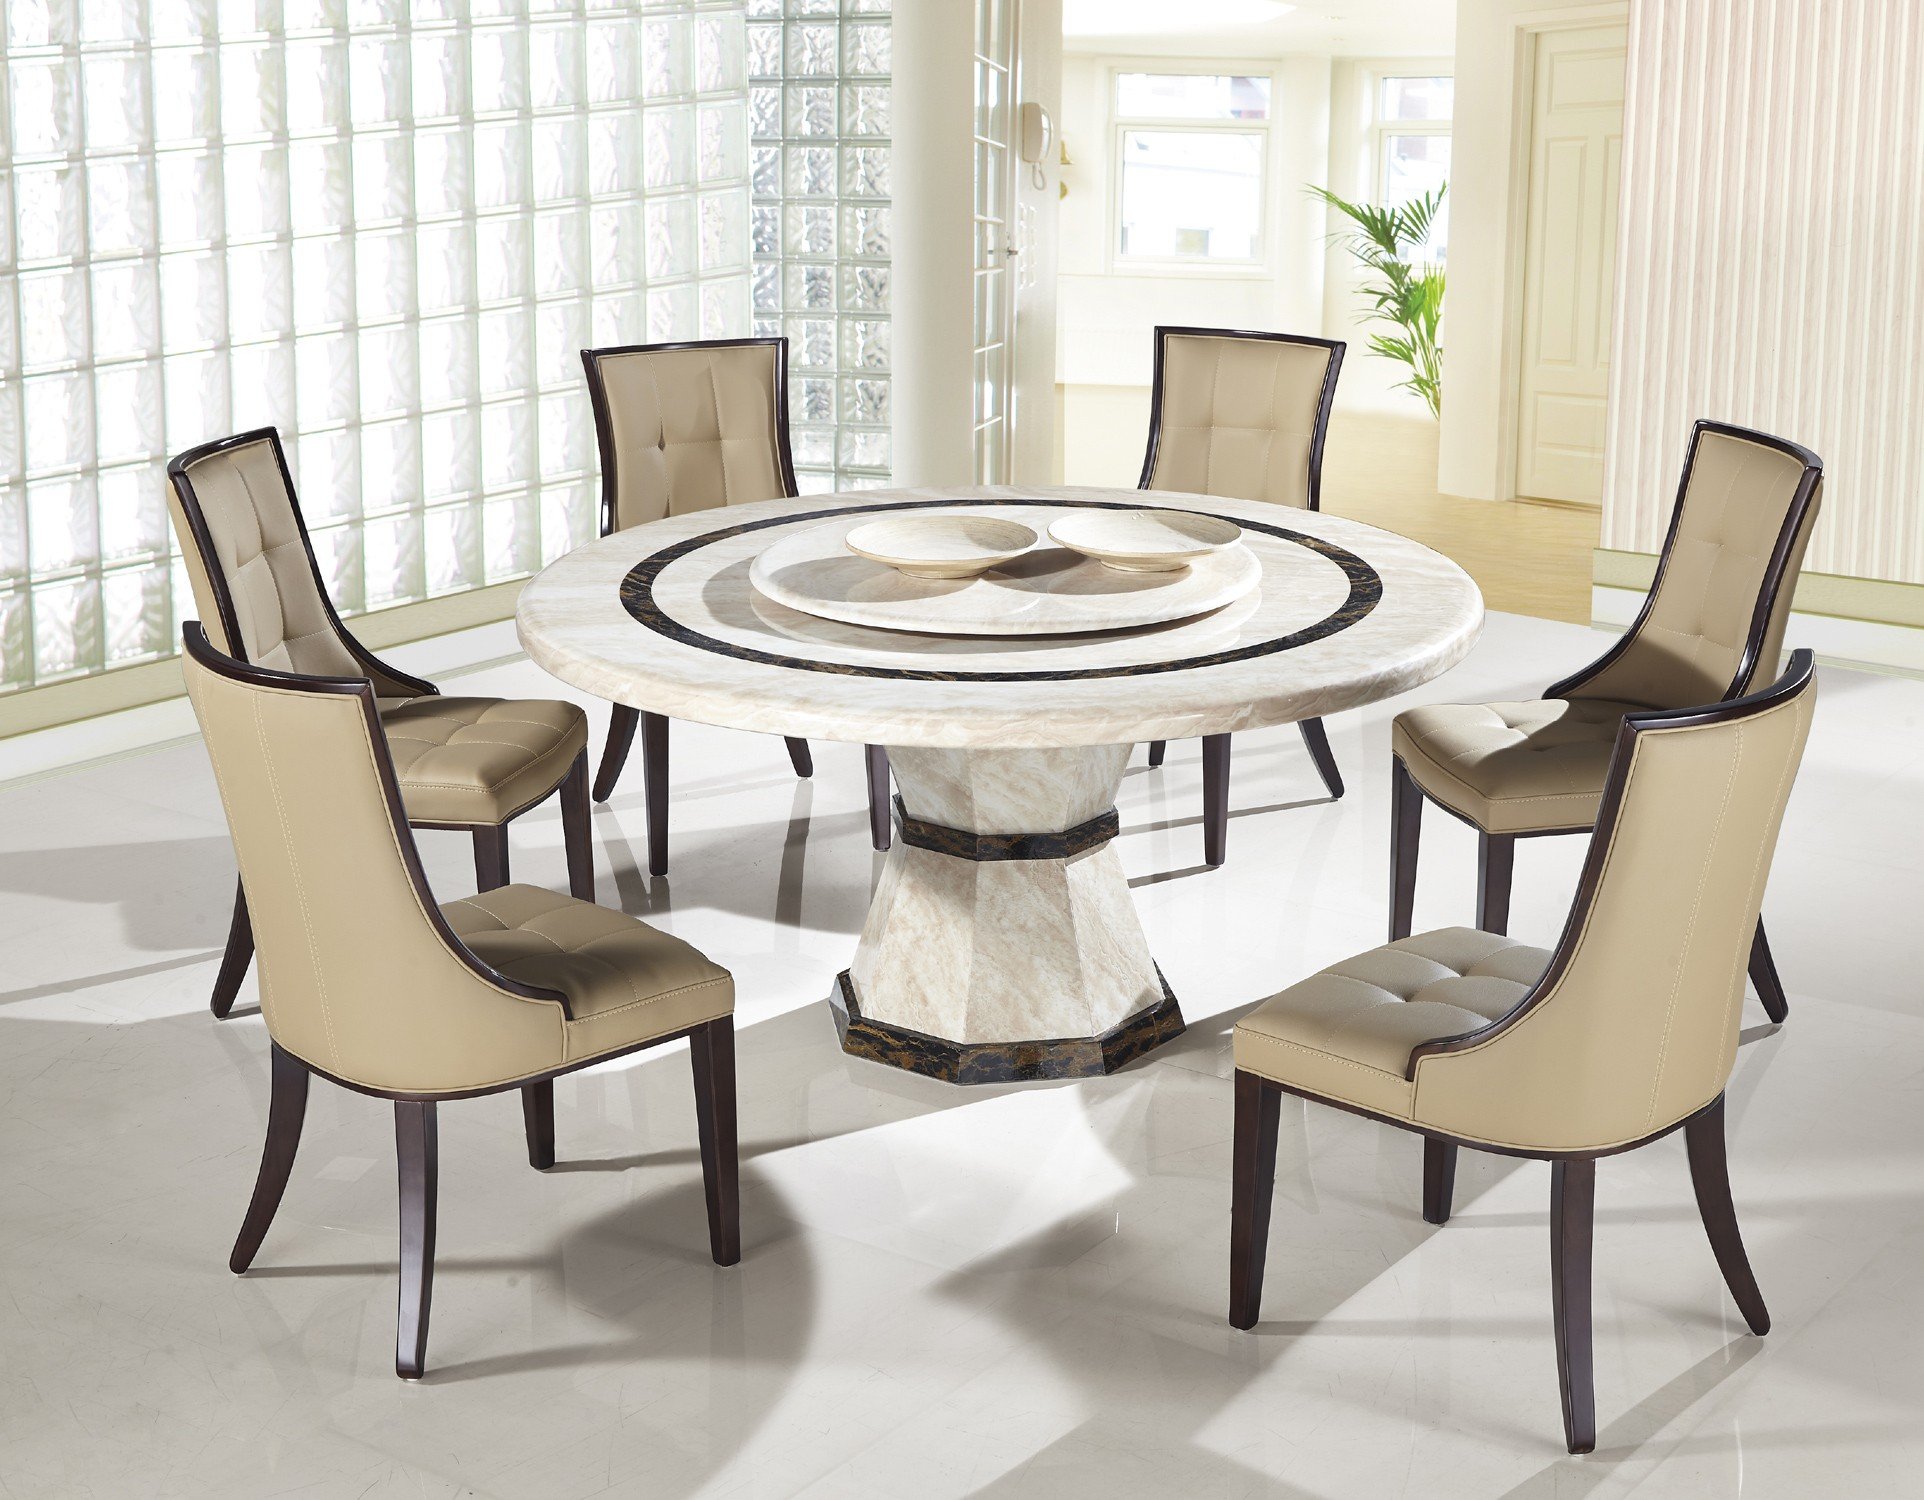 Modern Round Dining Set Shop For Affordable Home Furniture Decor